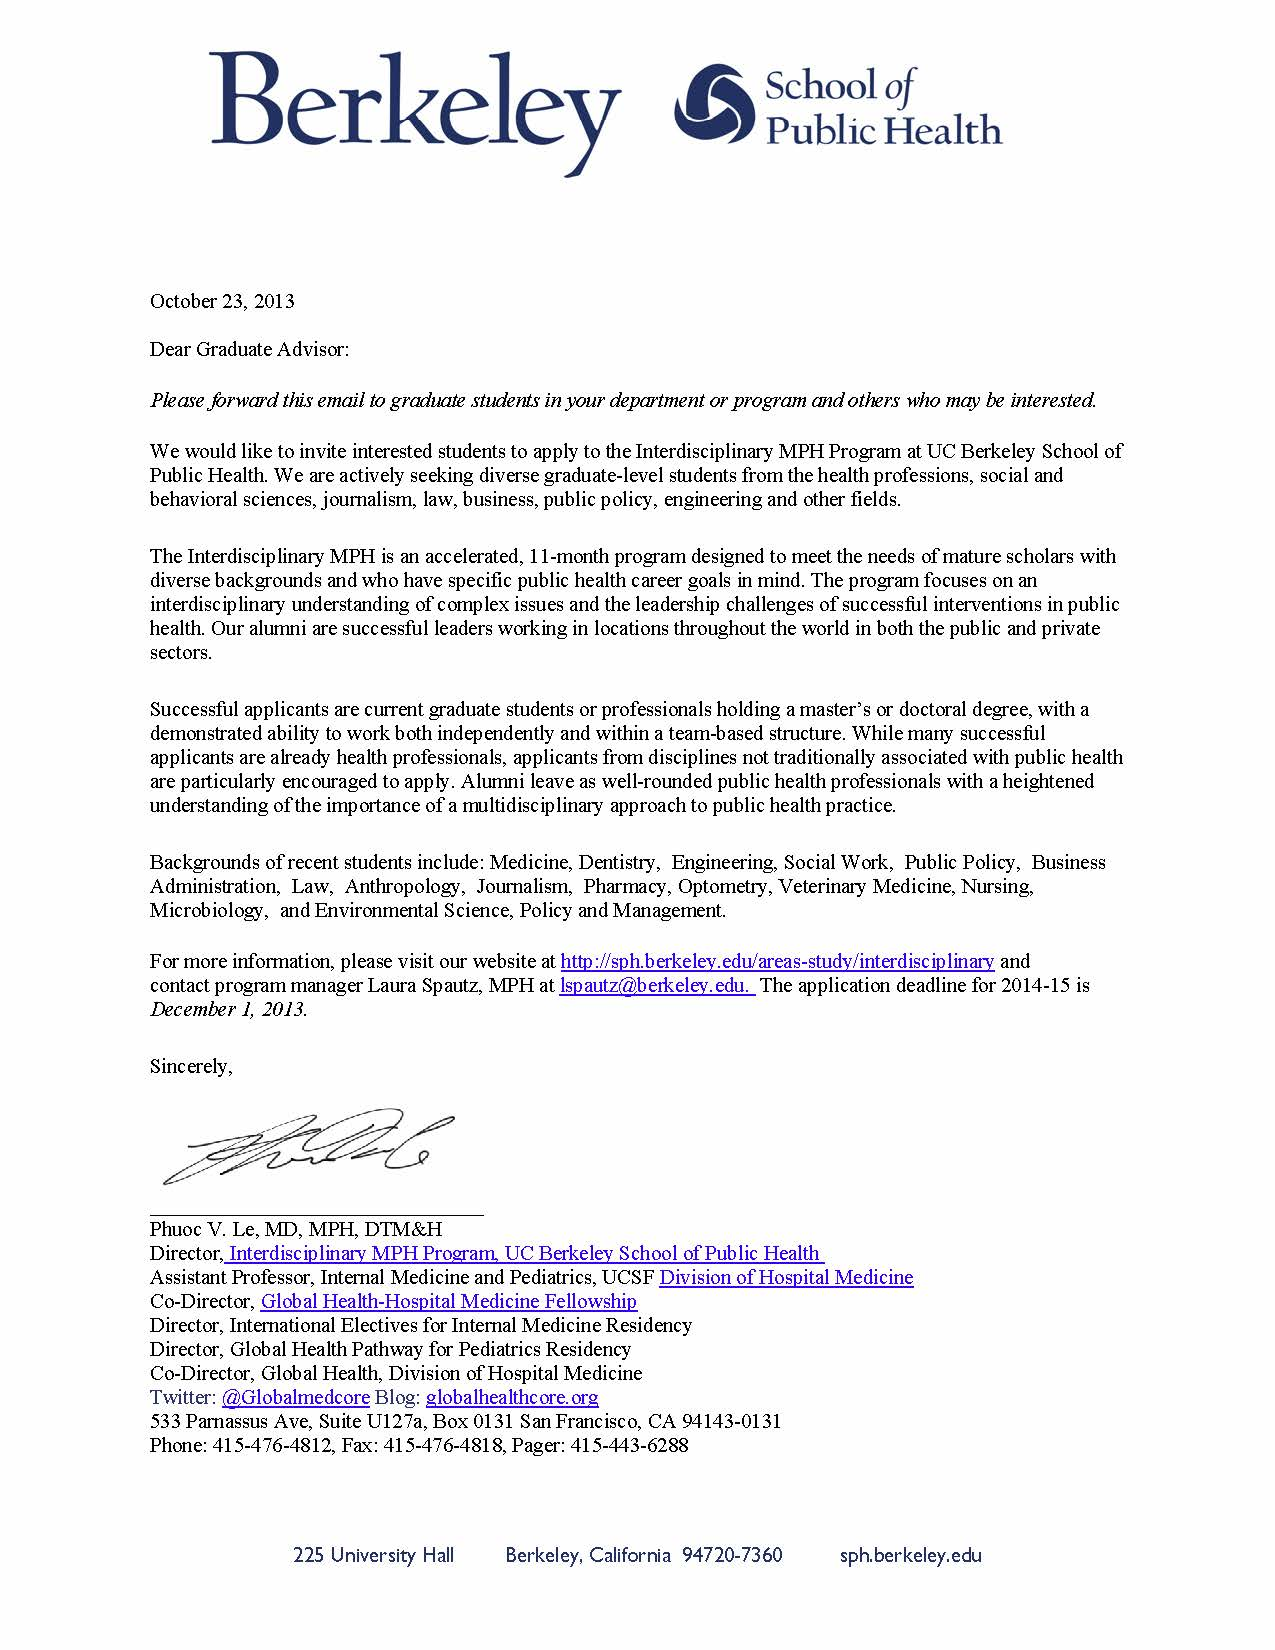 uc berkeley acceptance letter interdisciplinary mph program uc berkeley school of 50072